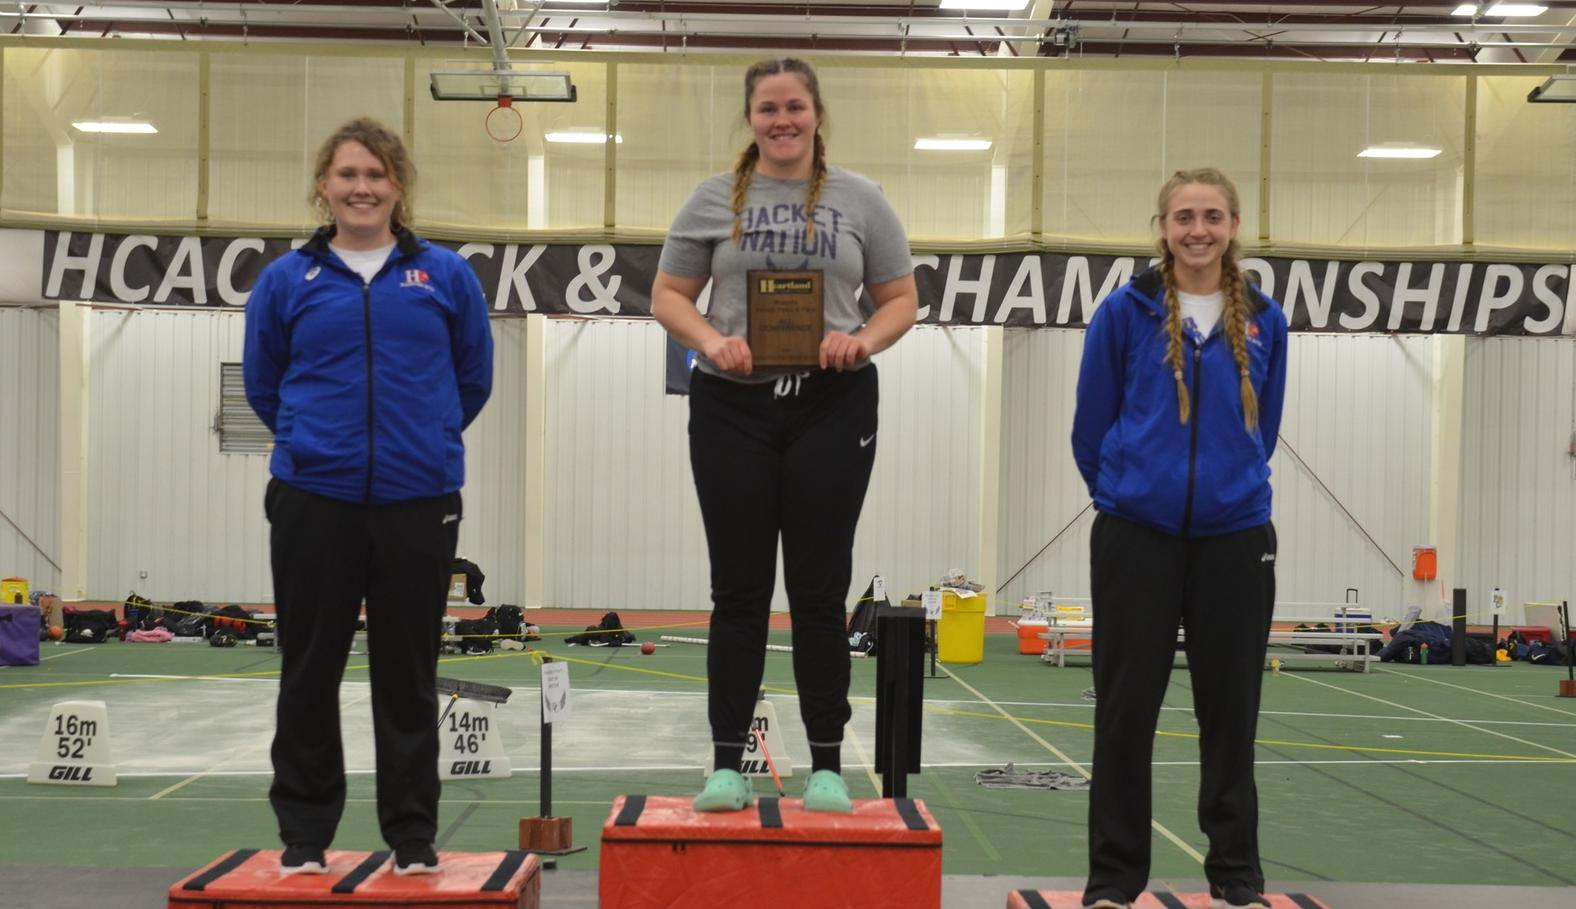 Bowman, Trimpey Post Strong Performances in HCAC Championship